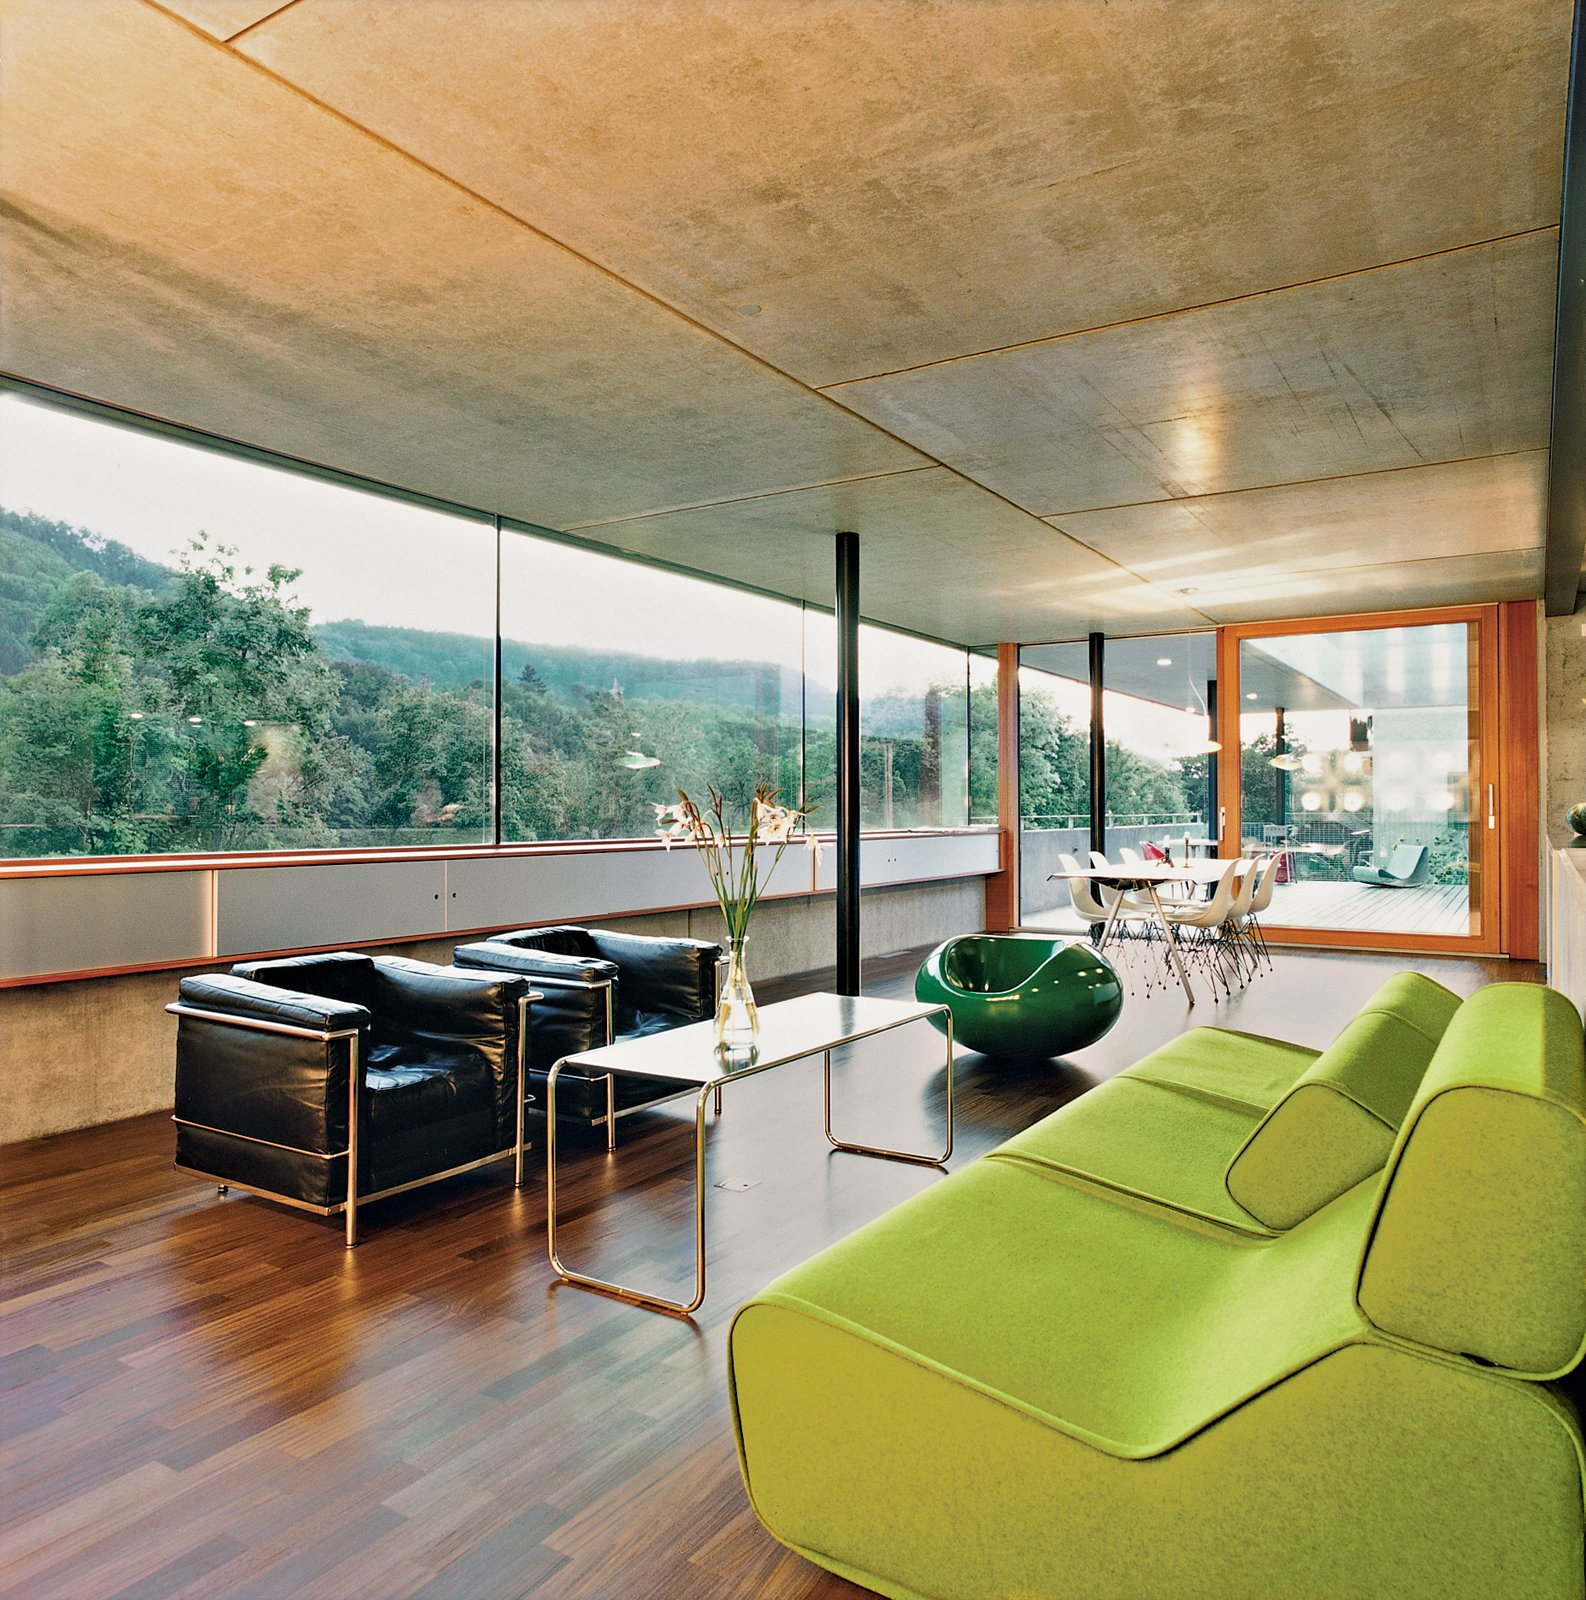 Living Room, Chair, Medium Hardwood Floor, Sofa, and Coffee Tables After walking through the front door visitors enter directly into the enormous kitchen and living space. The interior is minimal, using predominantly timber and concrete. It also provides some spectacular views of the river.  Futuristic Prefab Homes by Robert Gordon-Fogelson from Swiss Mix